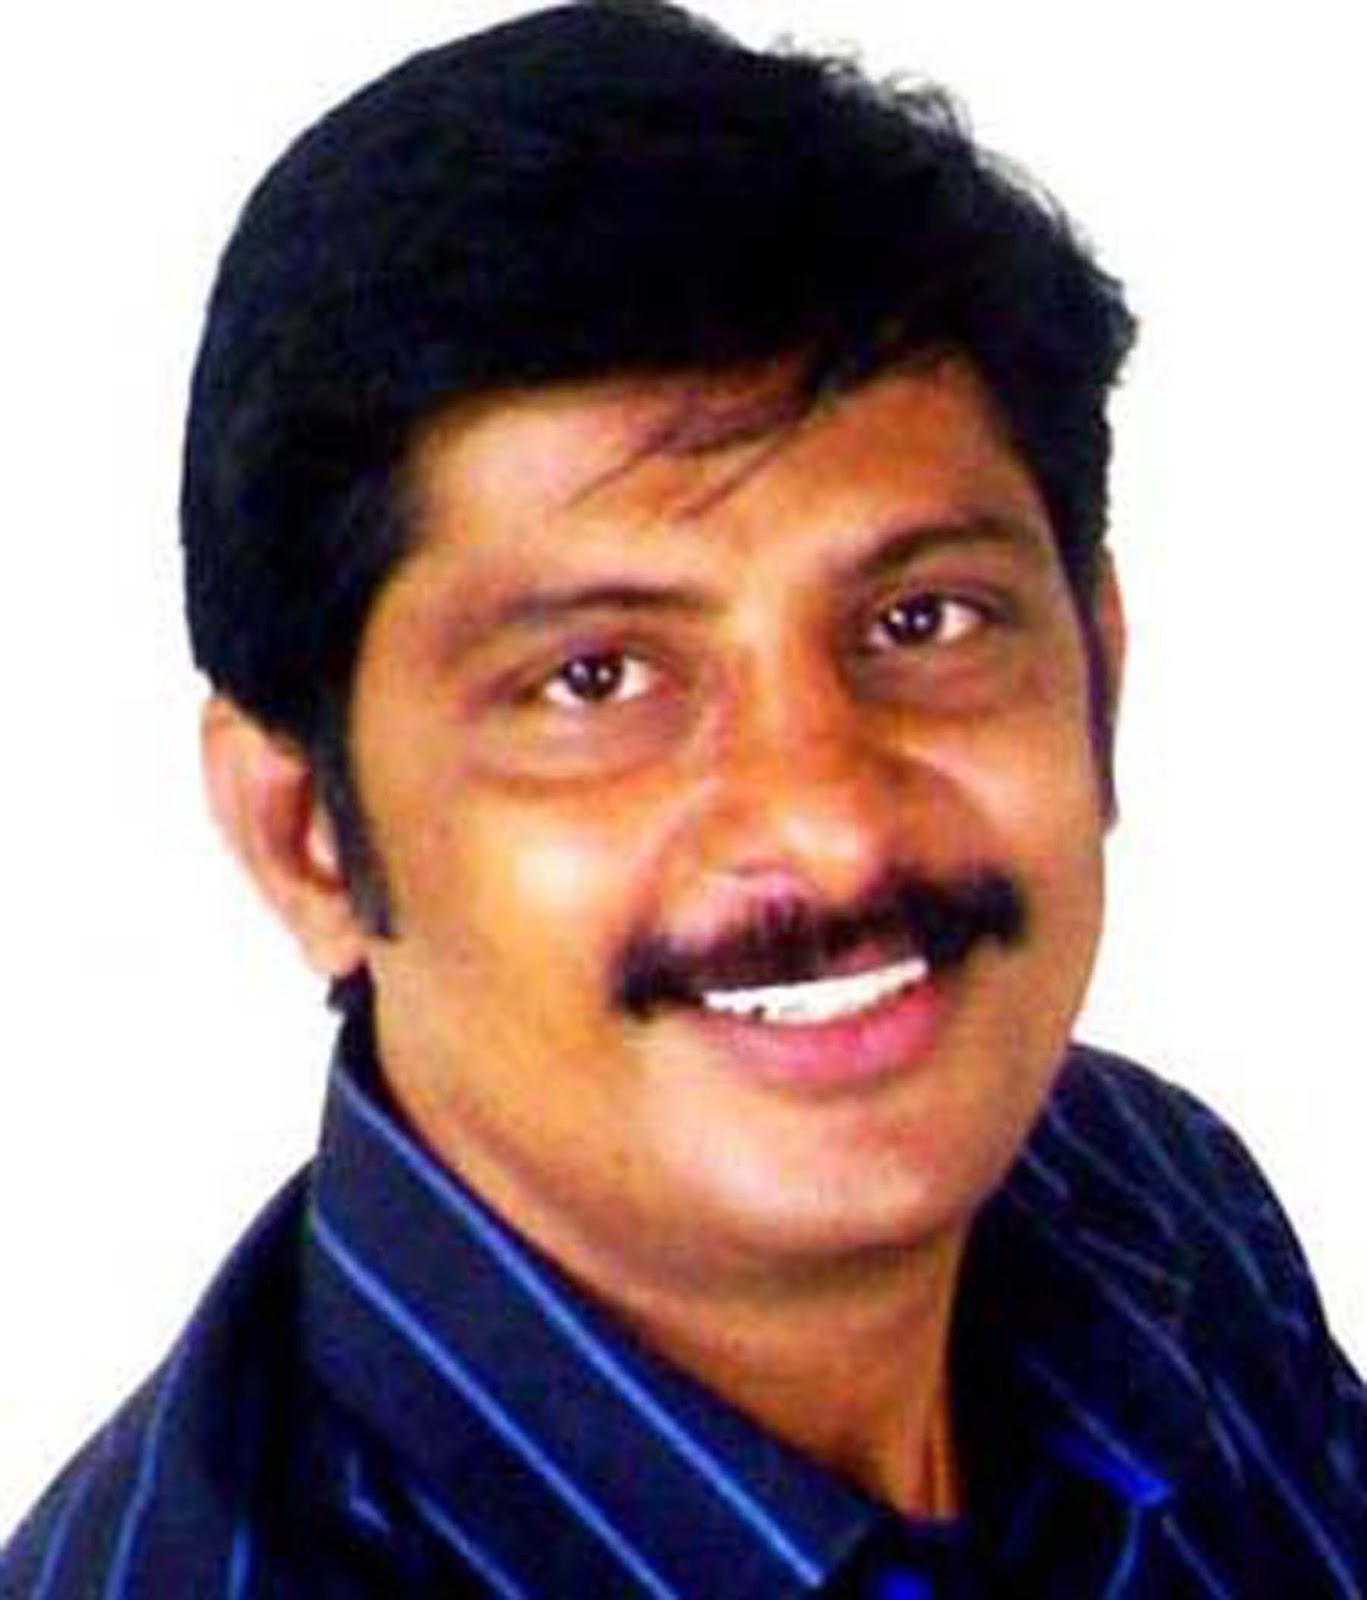 nagendra babu wifenagendra babu son, nagendra babu punyamurthula, nagendra babu age, nagendra babu daughter, nagendra babu family, nagendra babu height, nagendra babu twitter, nagendra babu bathini, nagendra babu date of birth, nagendra babu wife, nagendra babu biography, nagendra babu son name, nagendra babu son movie, nagendra babu speech, nagendra babu raja babu, nagendra babu image, nagendra babu facebook, nagendra babu net worth, nagendra babu pic, nagendra babu konidela